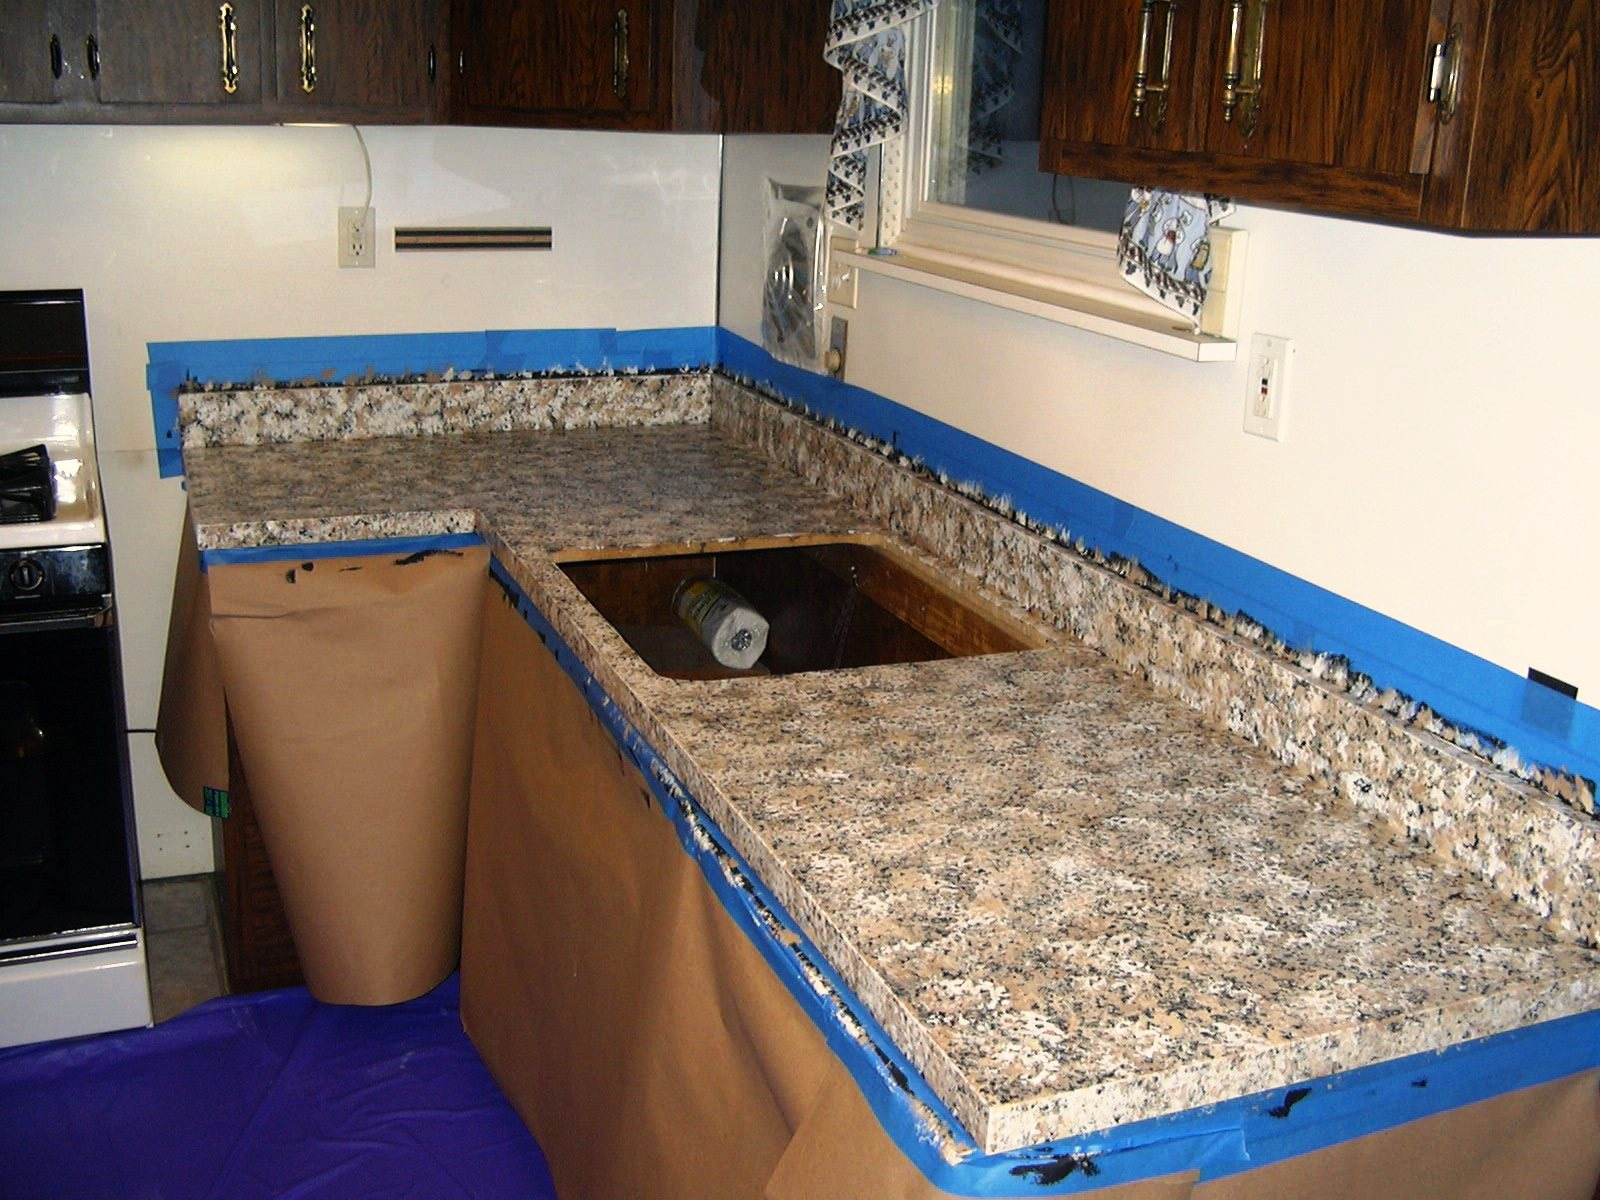 Countertop Paint Kit Lowes : ... Blog Comments (0) Email this Tags : Granite countertop paint lowes